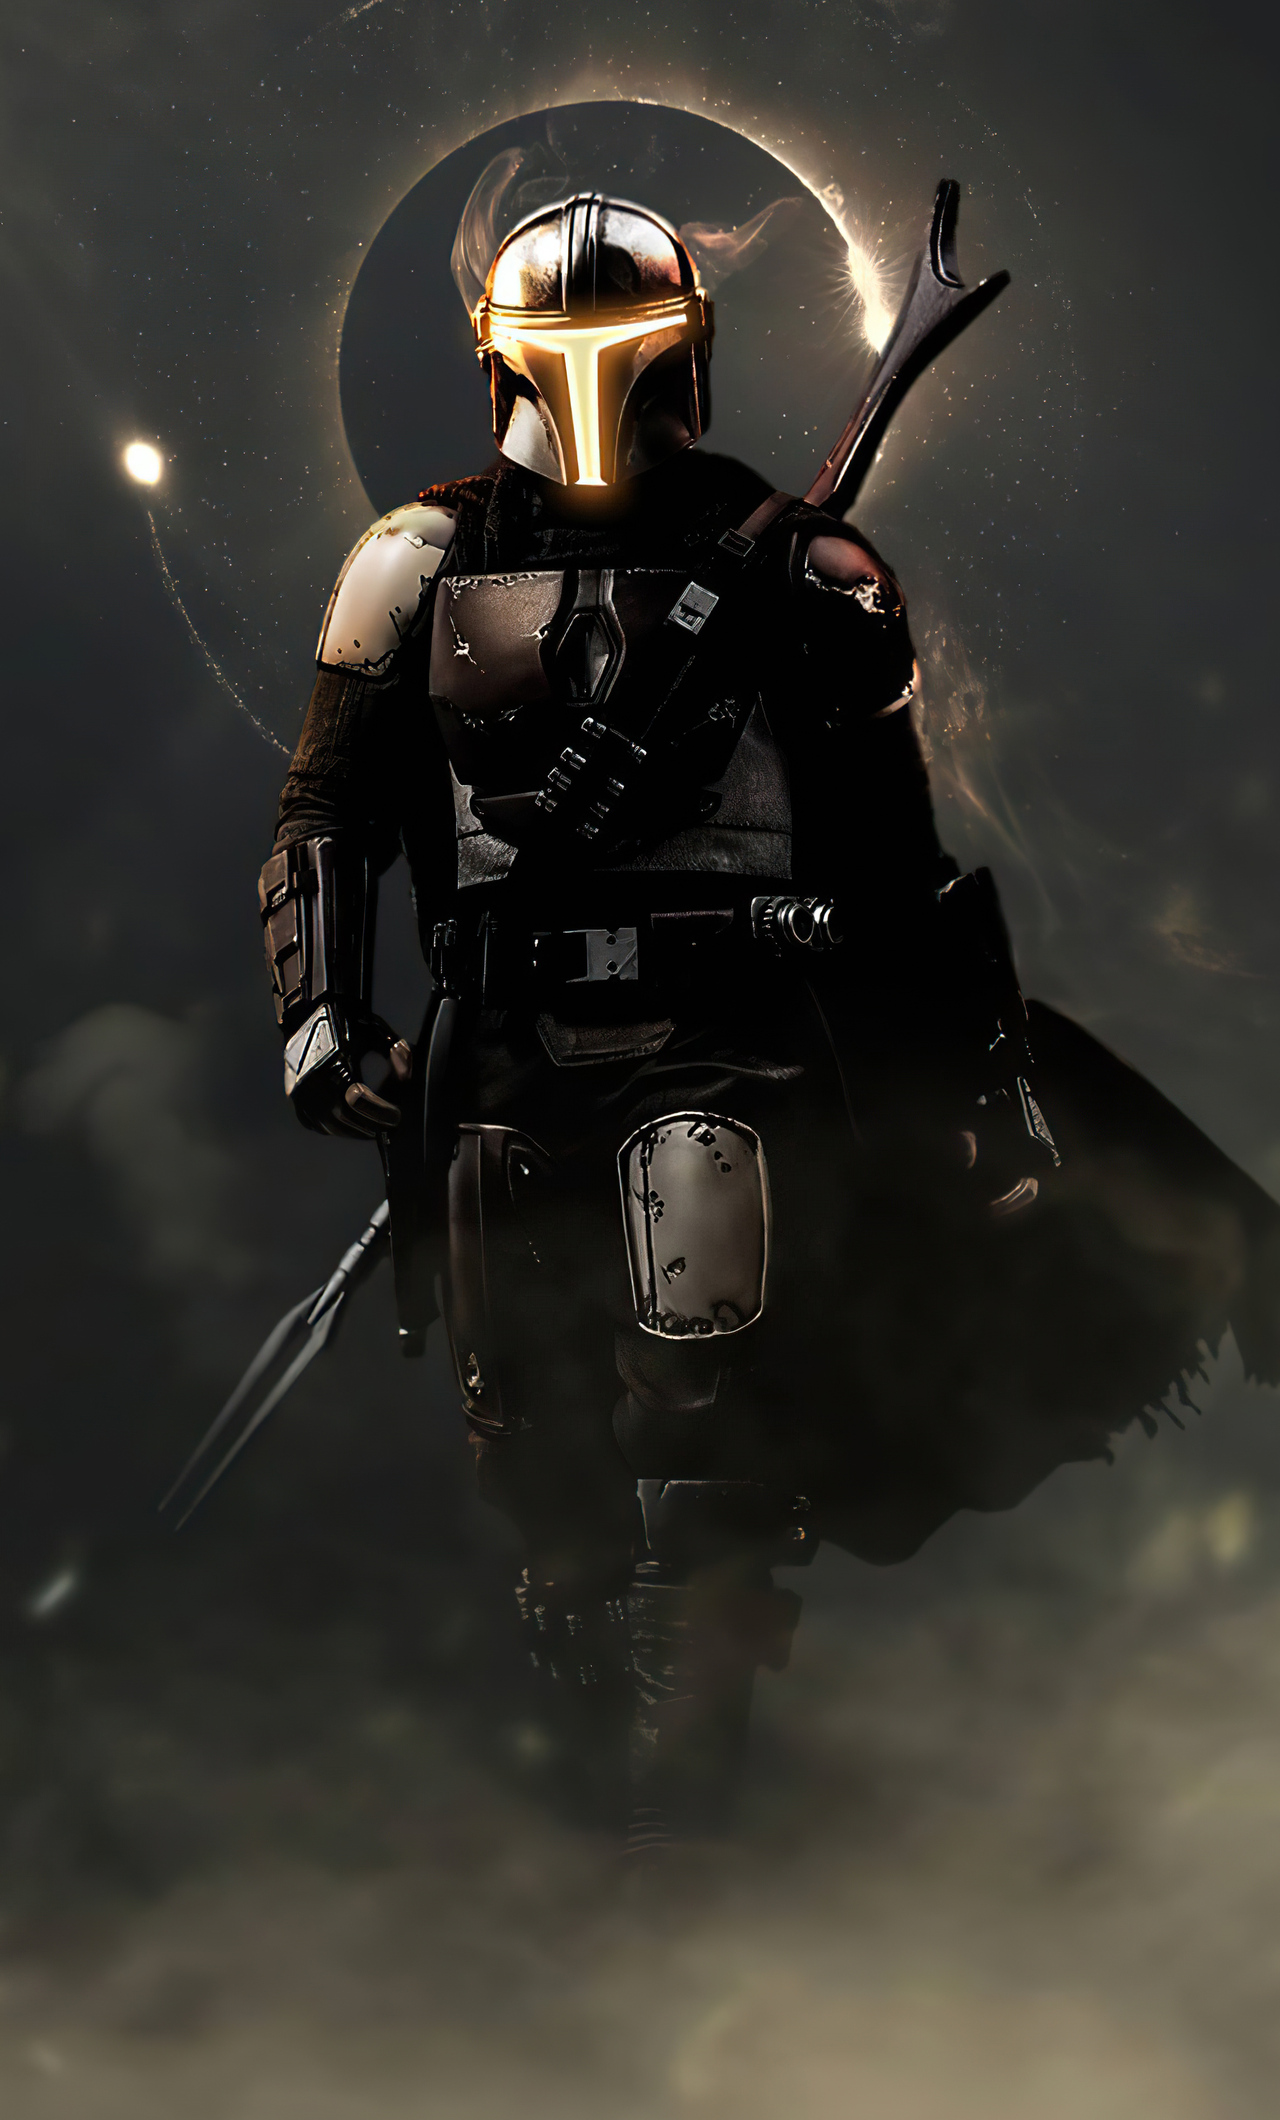 1280x2120 The Mandalorian Season 2 4k 2021 Iphone 6 Hd 4k Wallpapers Images Backgrounds Photos And Pictures